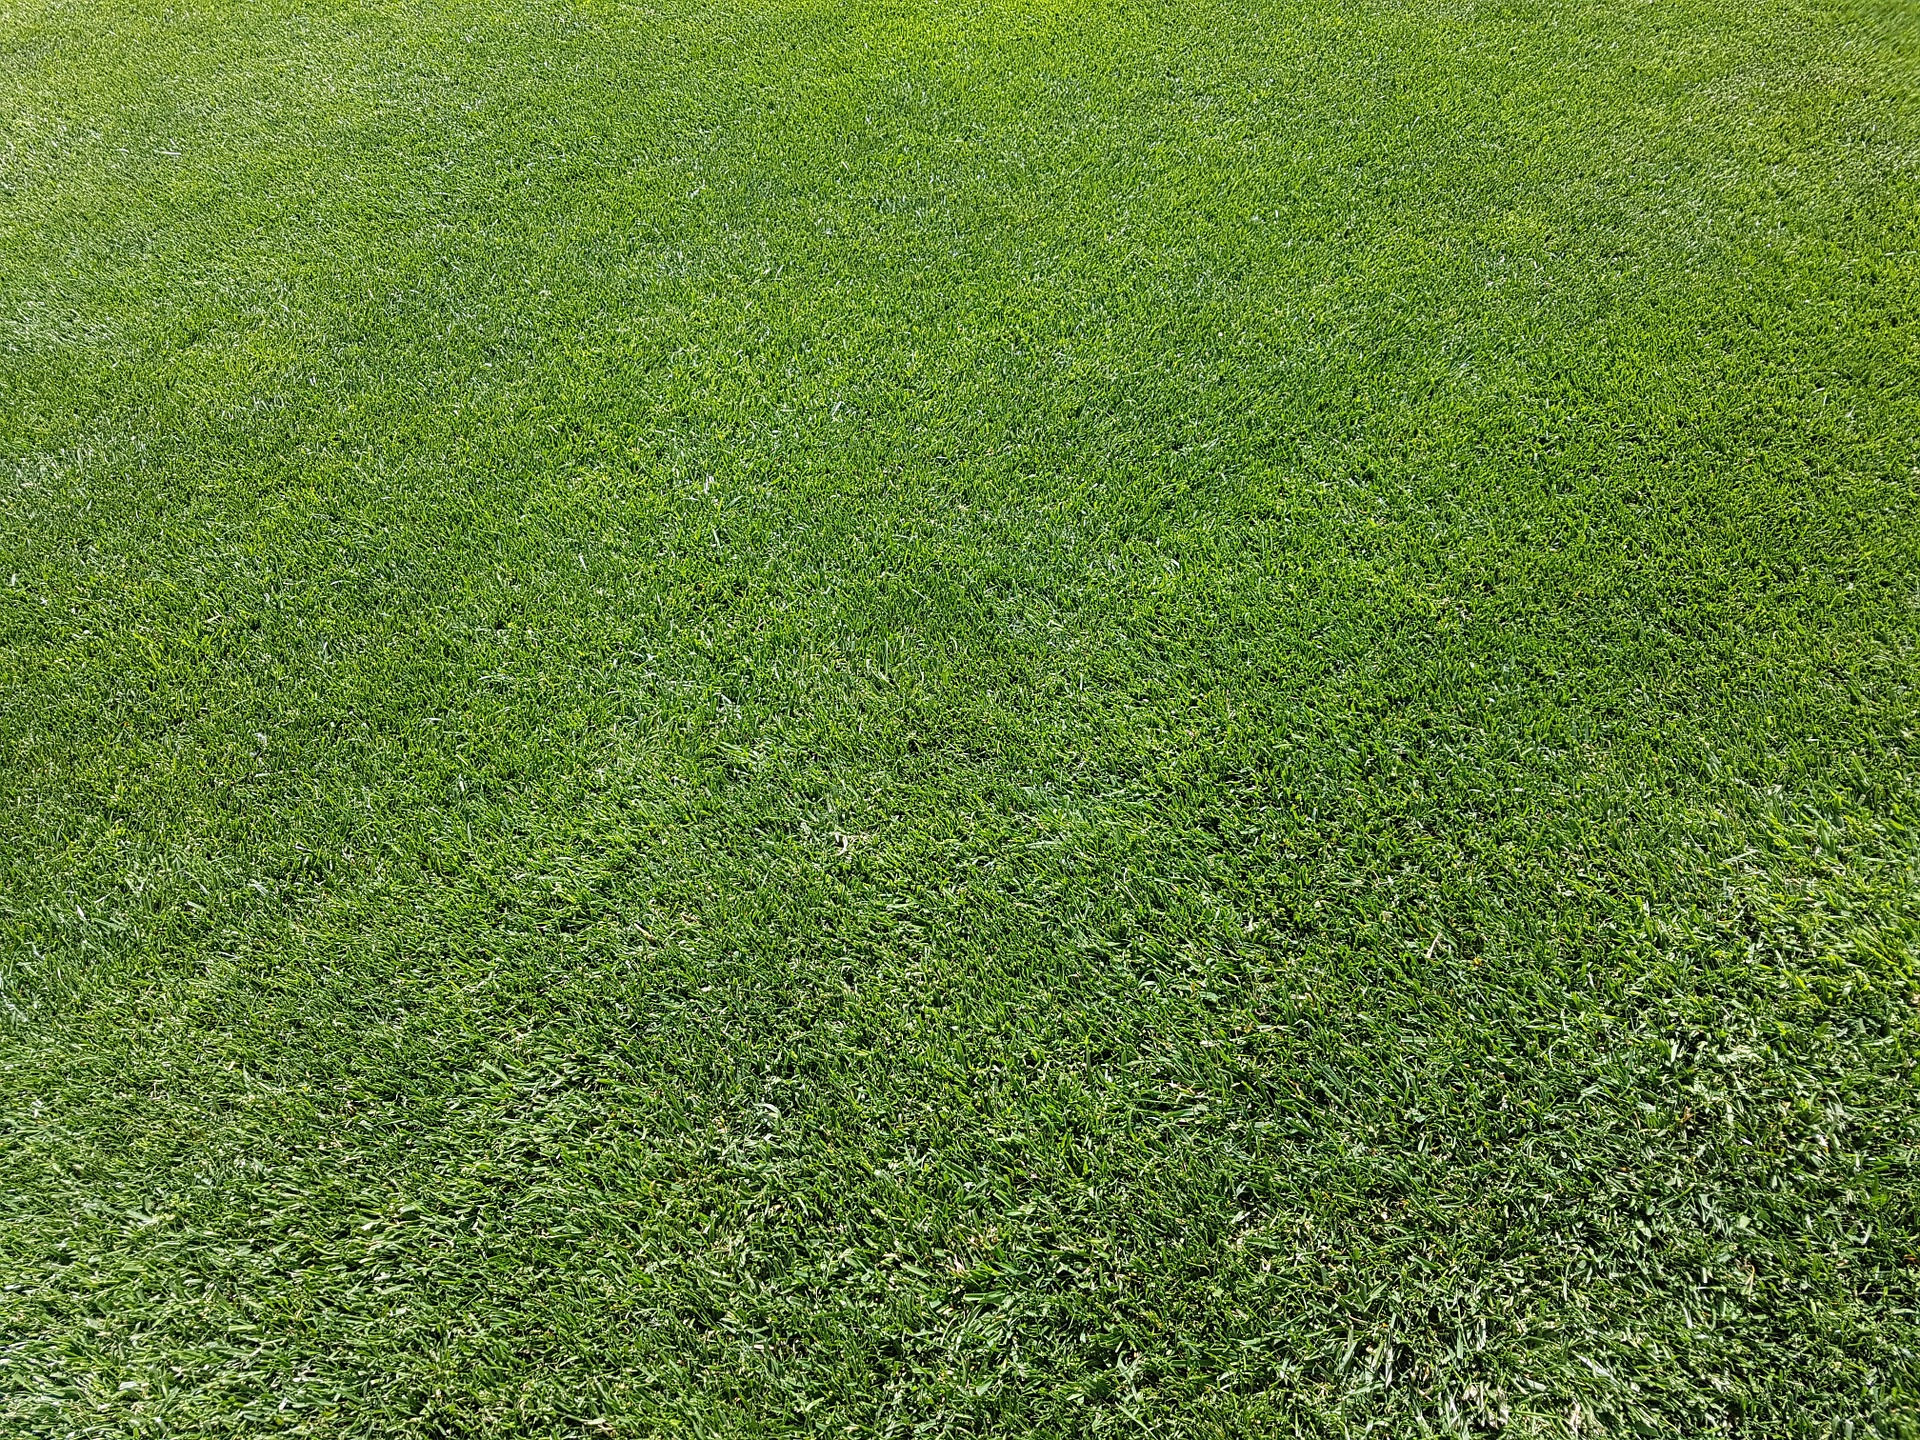 landscaping-company-lawn-care-mechanicsville-southern-maryland